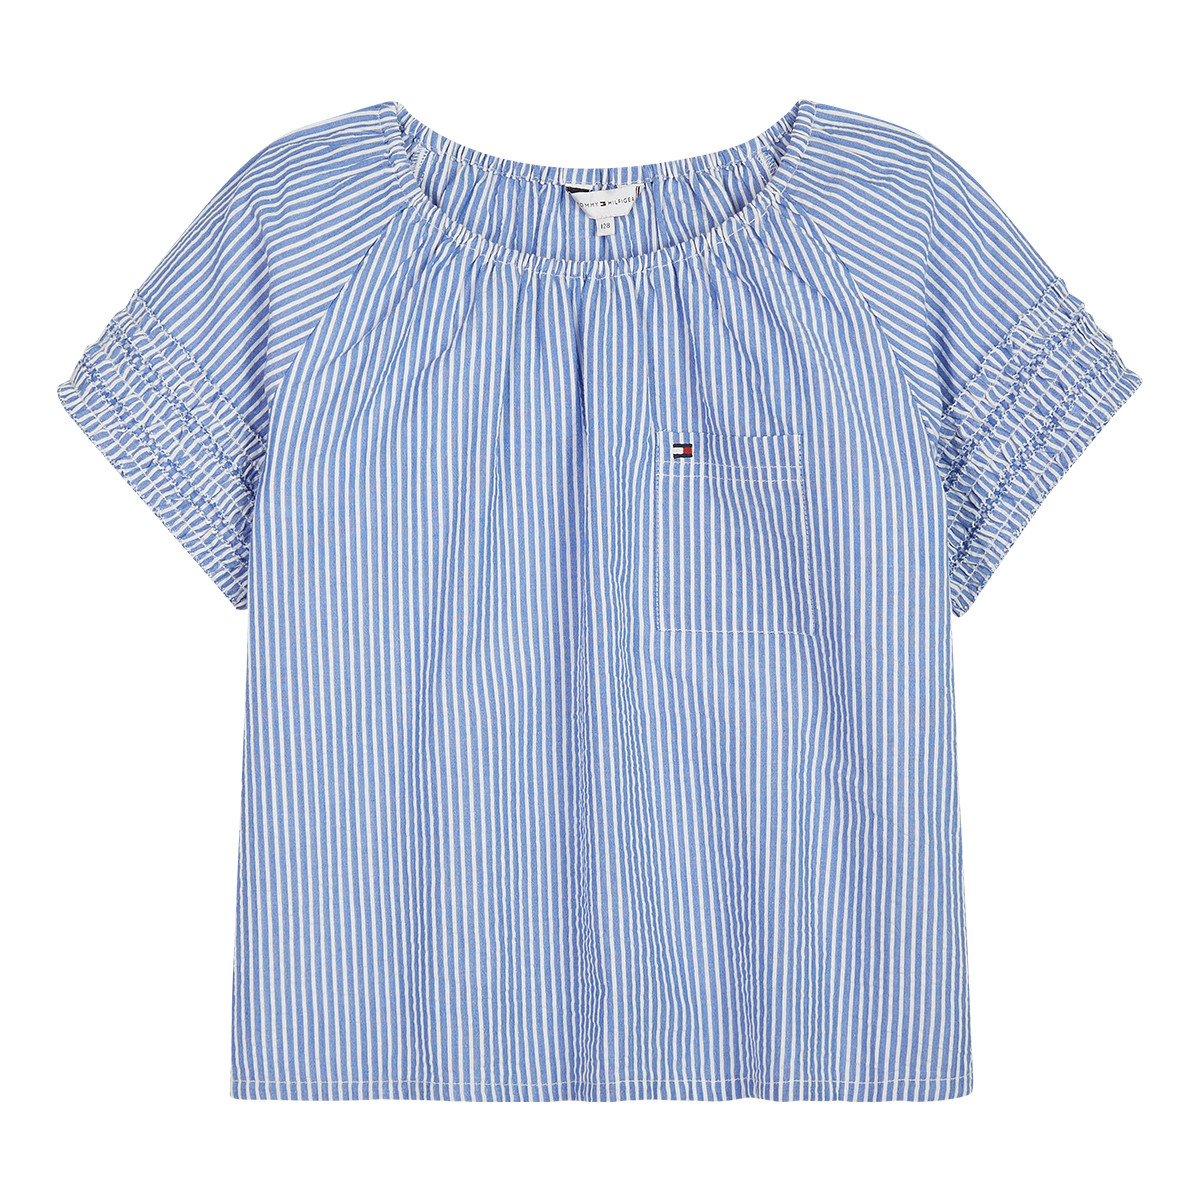 Image of   TOMMY HILFIGER ITHICA SKJORTE 04456 (Shirt Blue, 128)